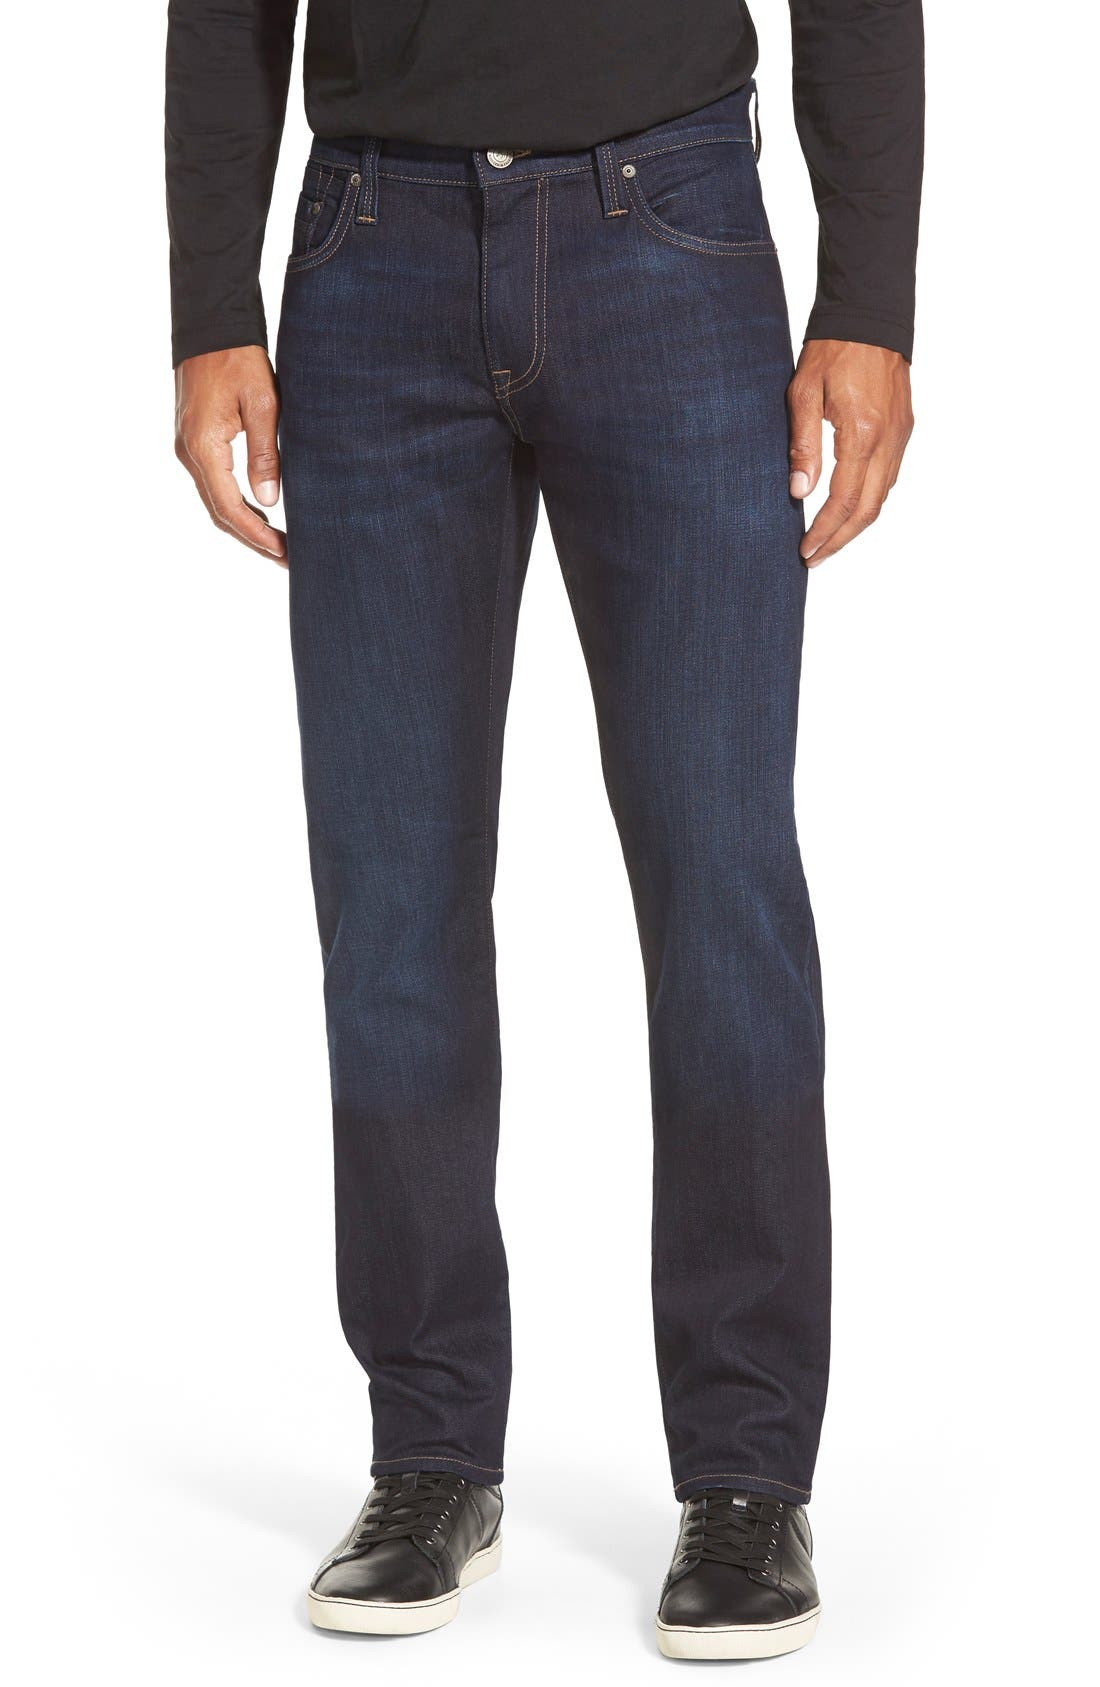 MAVI JEANS 'Jake' Skinny Fit Jeans, Main, color, RINSE BRUSHED WILLIAMSBURG